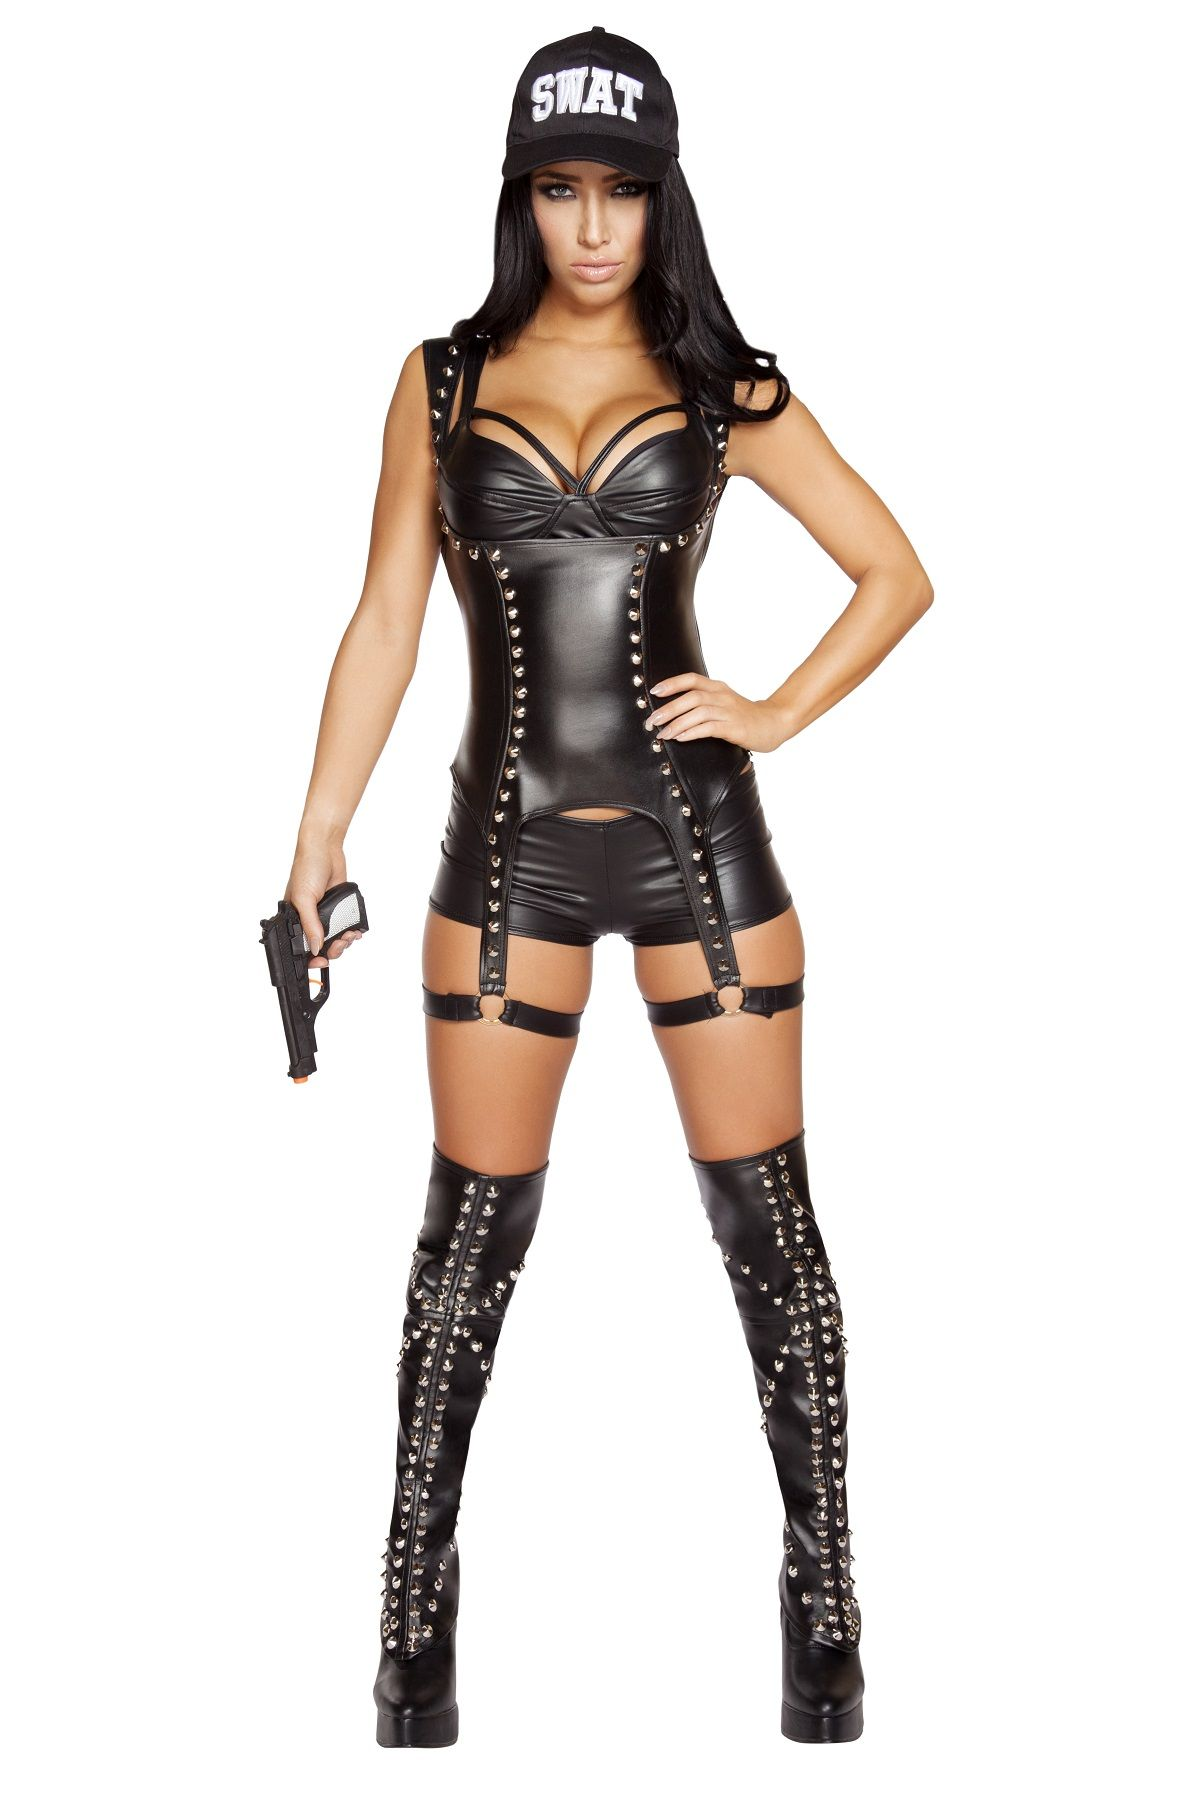 swat agent woman police halloween costume - Girls Cop Halloween Costume